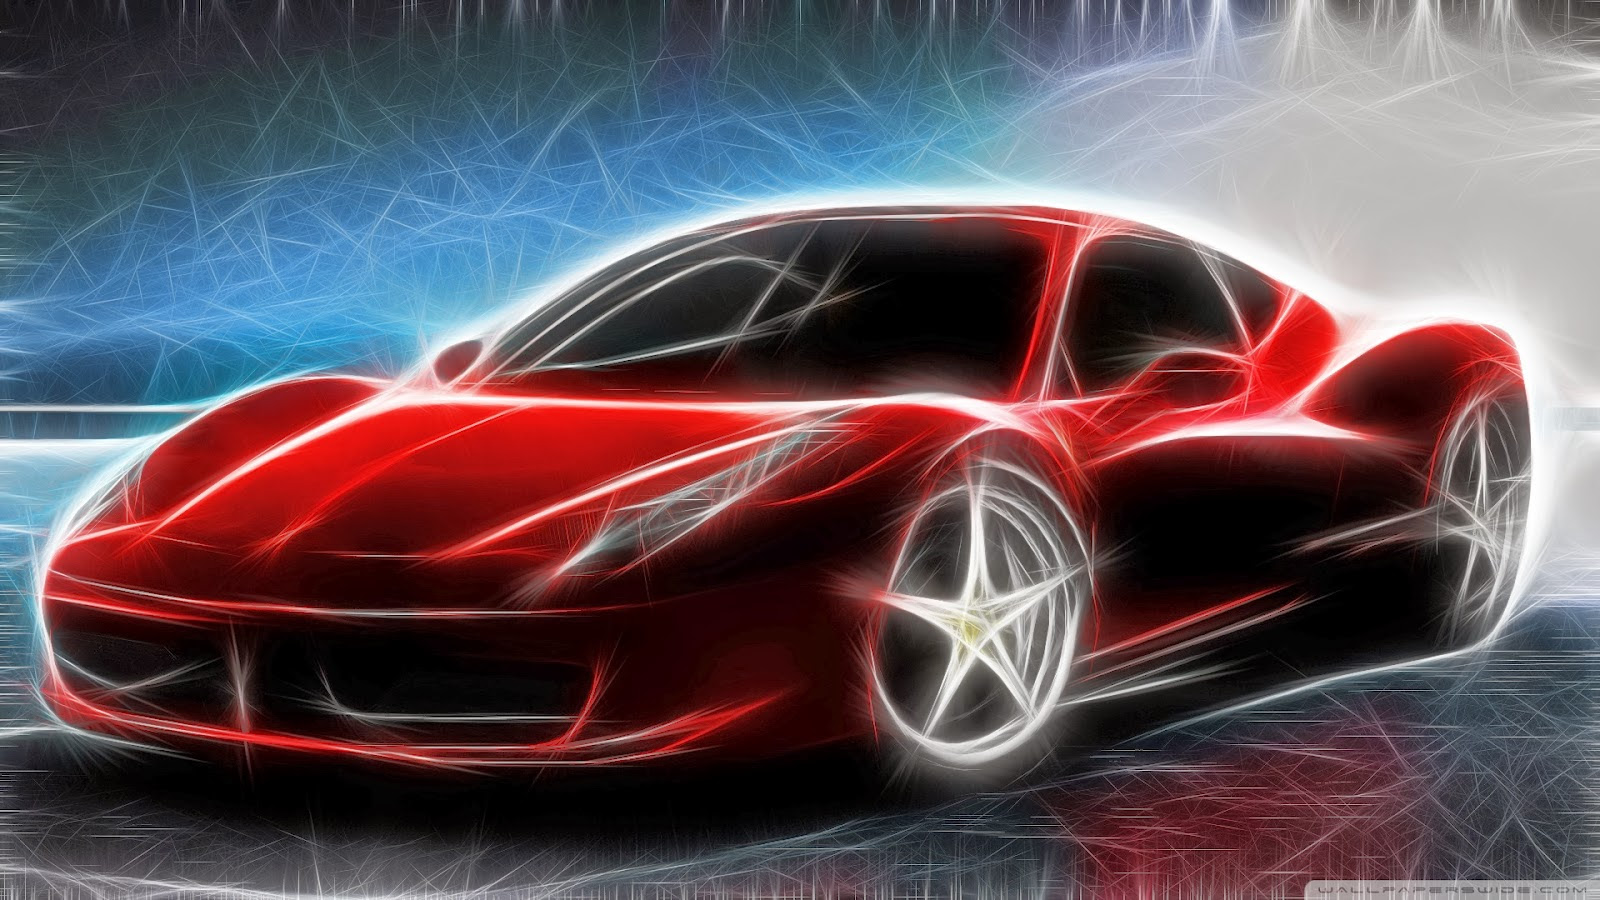 Ferrari HD Wallpapers Backgrounds Wallpaper